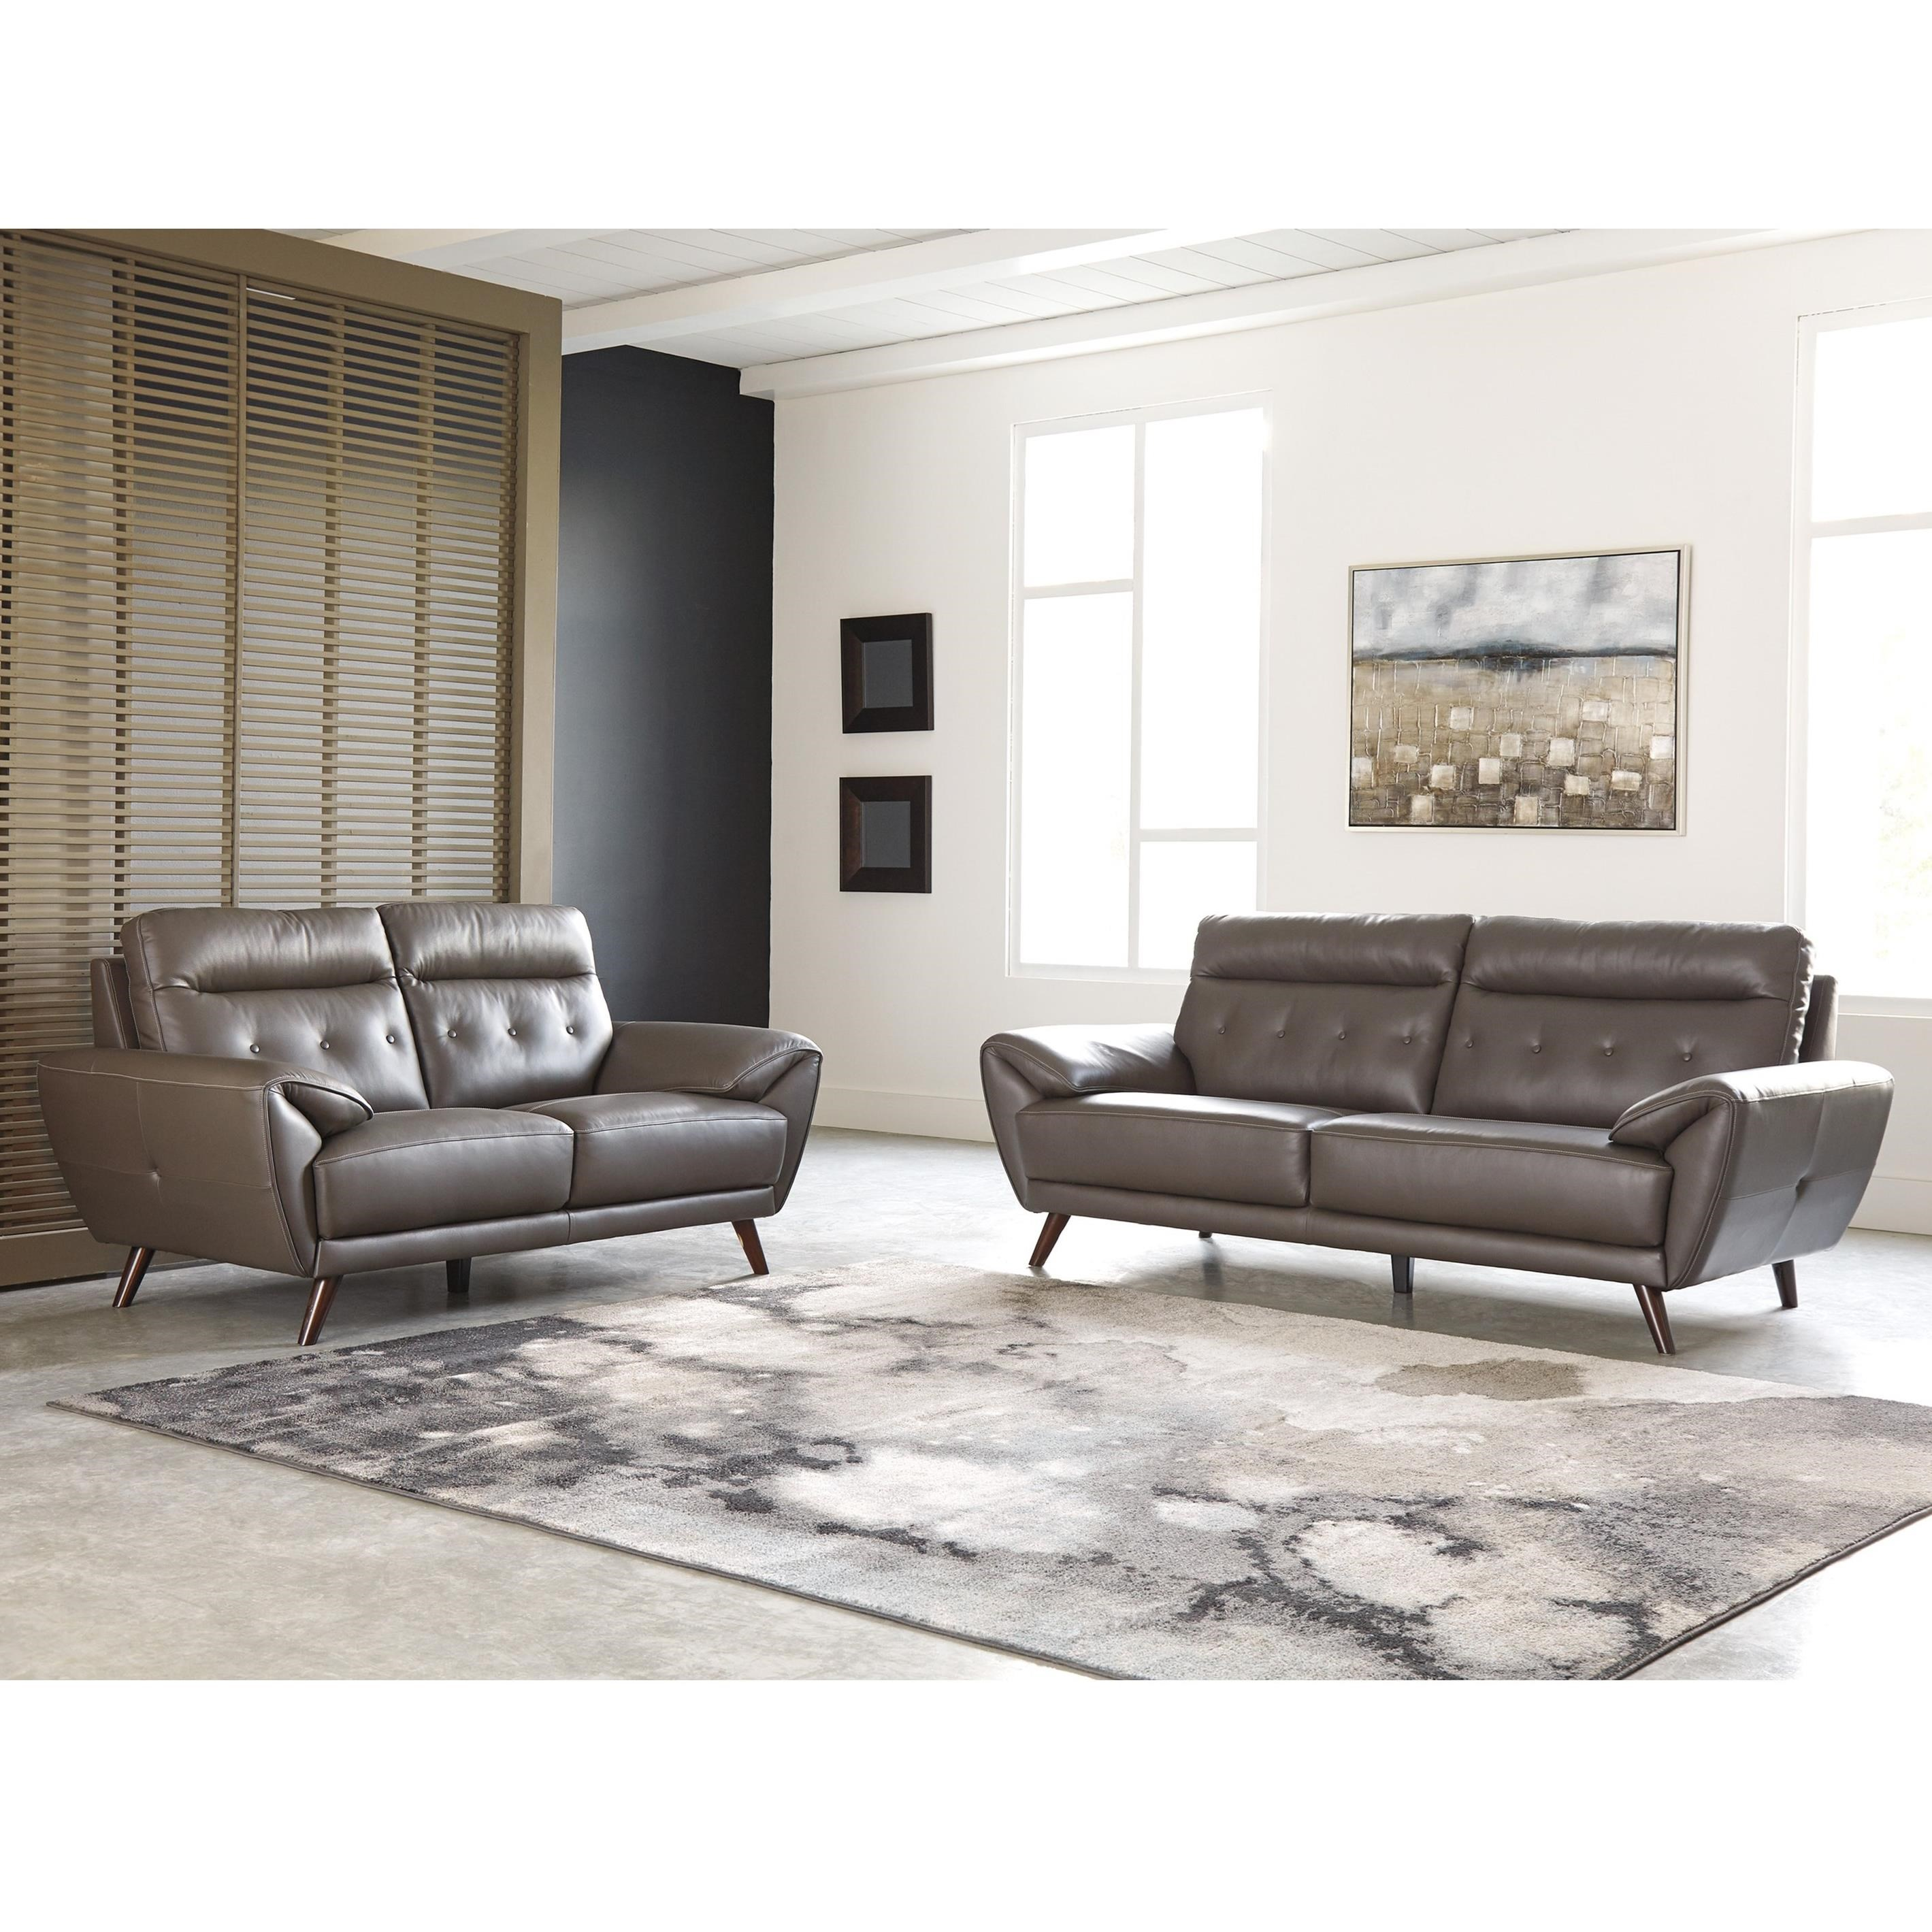 Signature Design By Ashley Sissoko Living Room Group Rotmans Stationary Living Room Groups